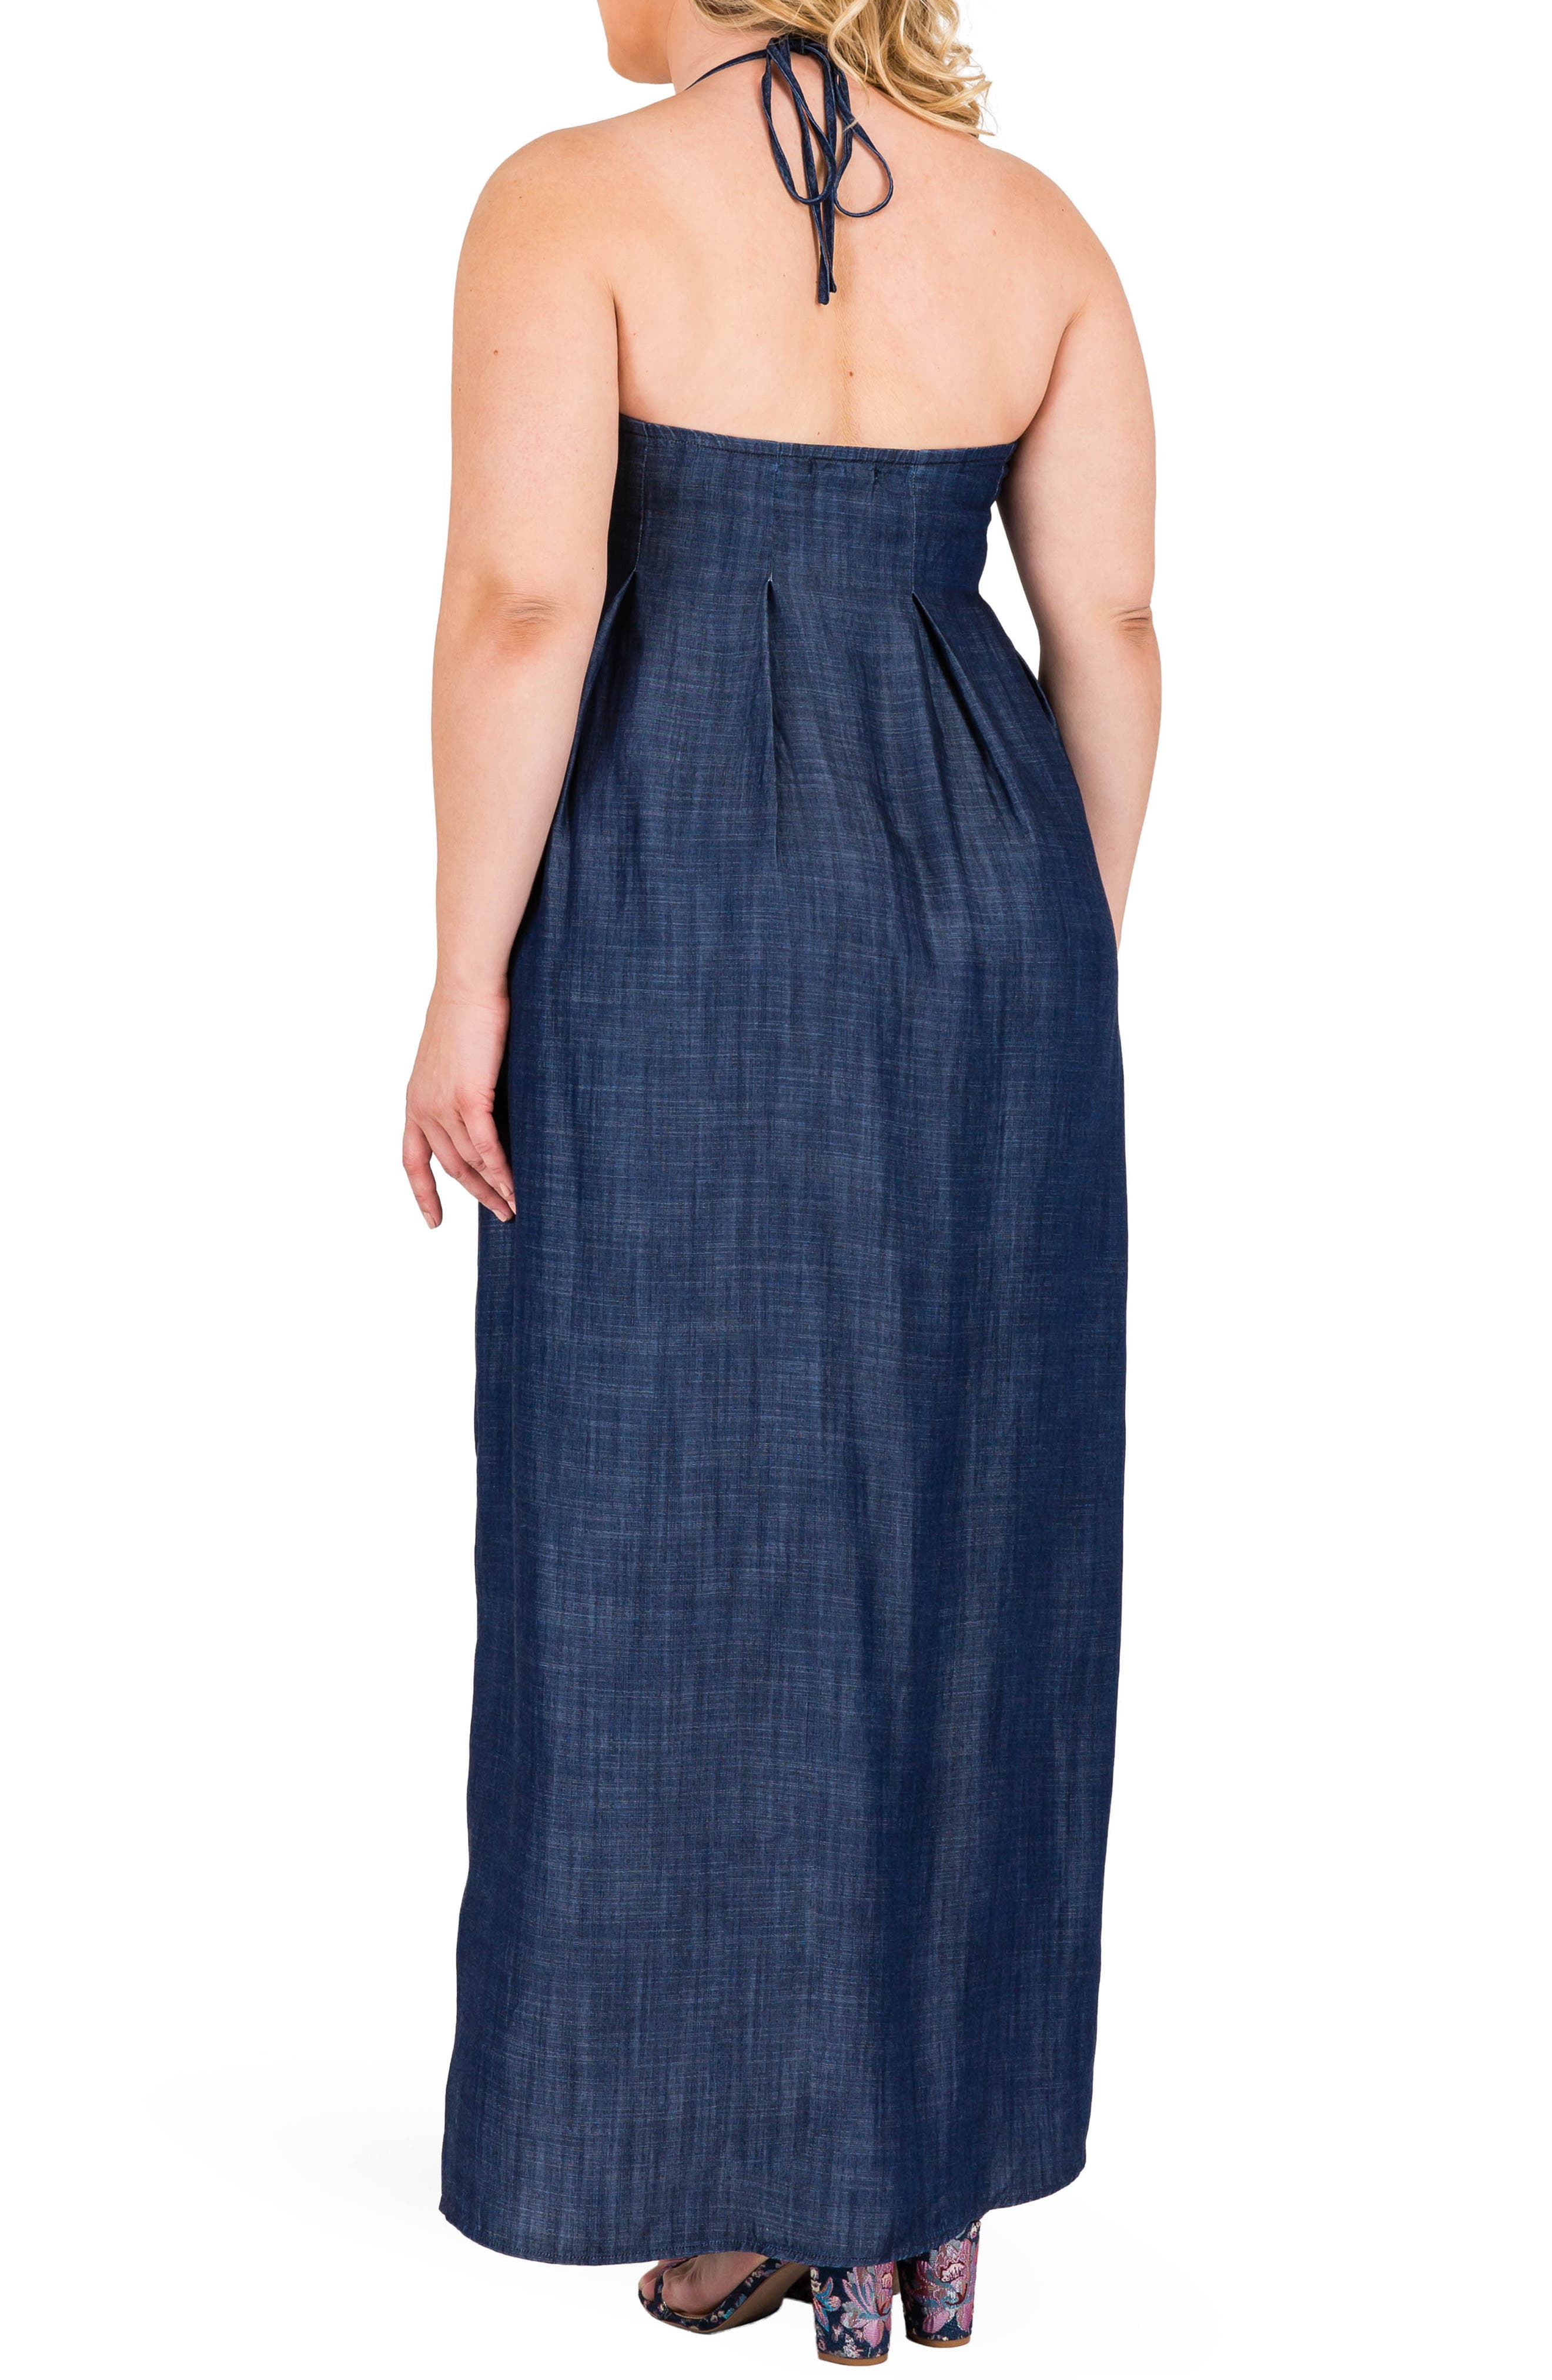 Maui Maxi Chambray Halter Dress,                             Alternate thumbnail 2, color,                             Dark Blue